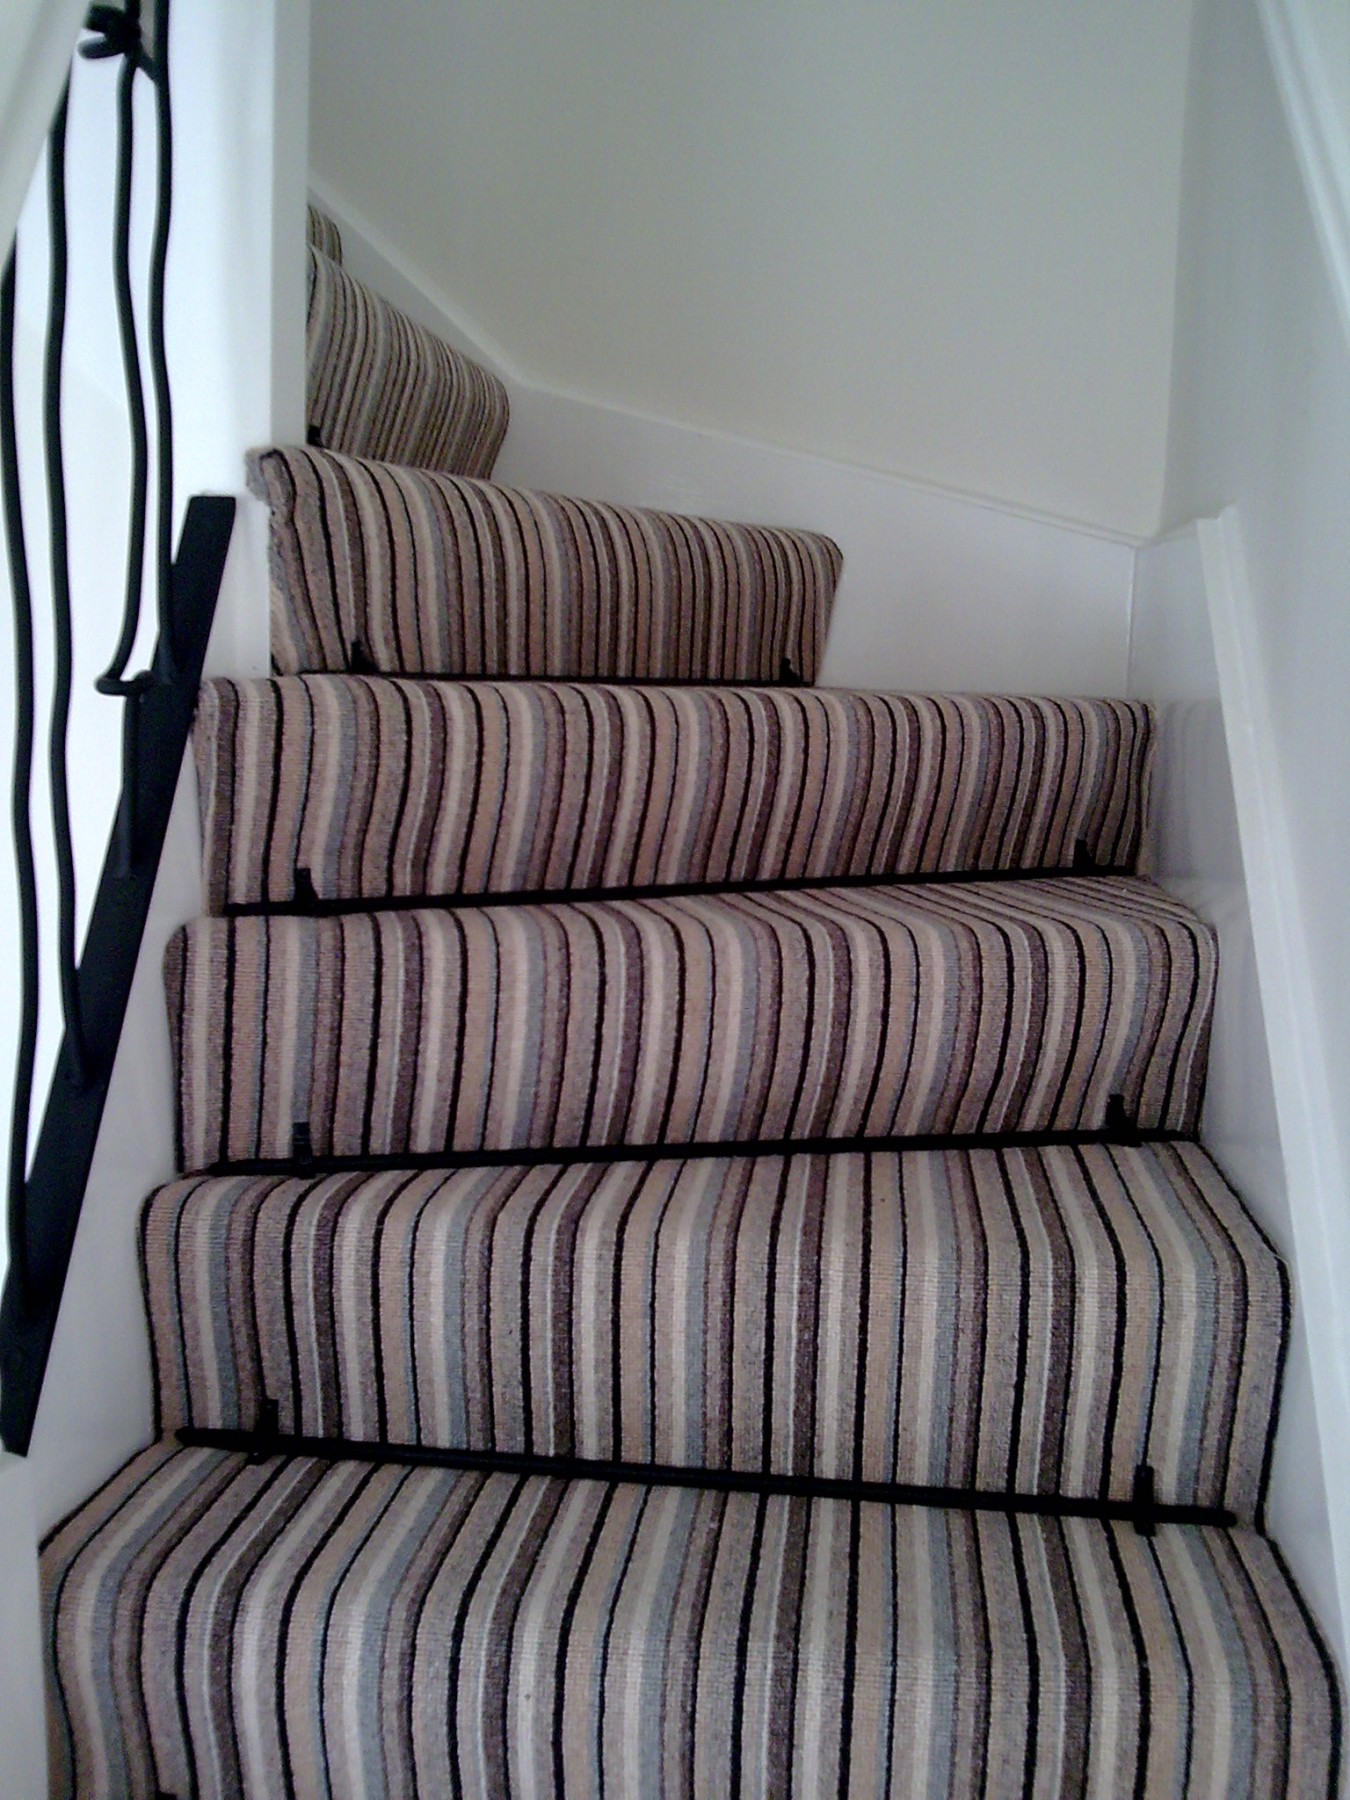 Corner staircase with a striped carpet